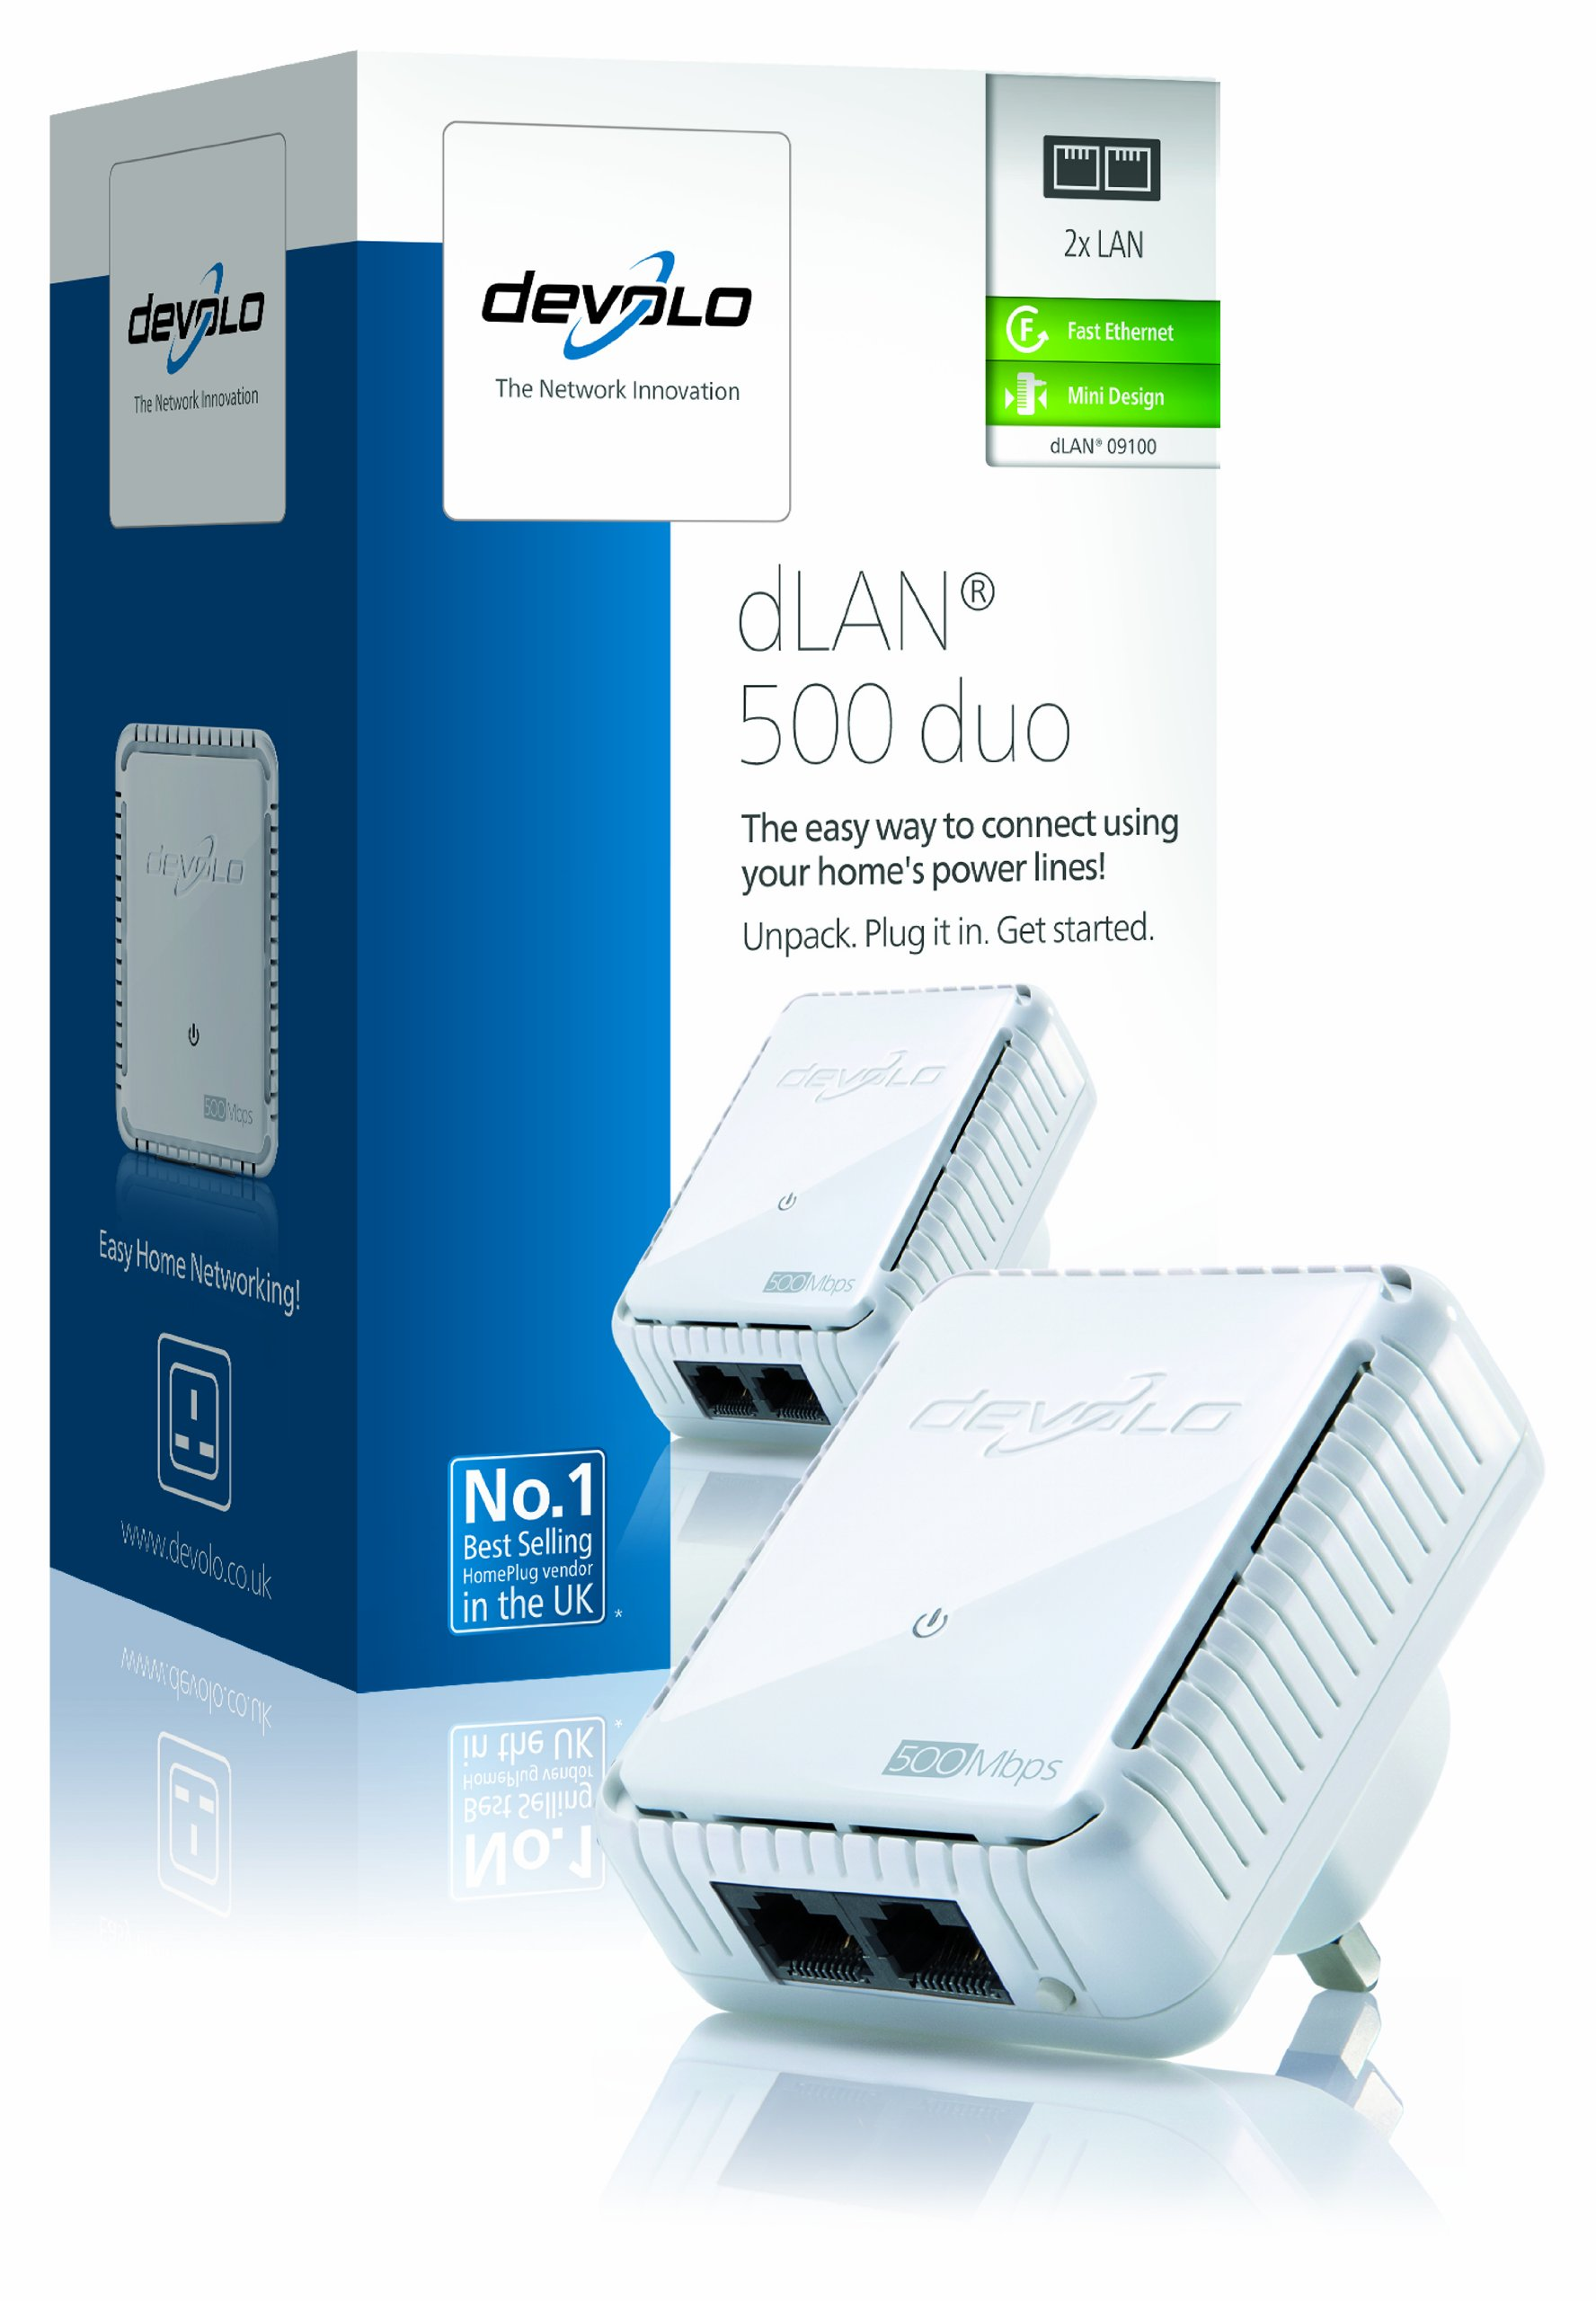 devolo dlan 500 duo add on powerline adapter 2 lan ports small 500 mbps. Black Bedroom Furniture Sets. Home Design Ideas